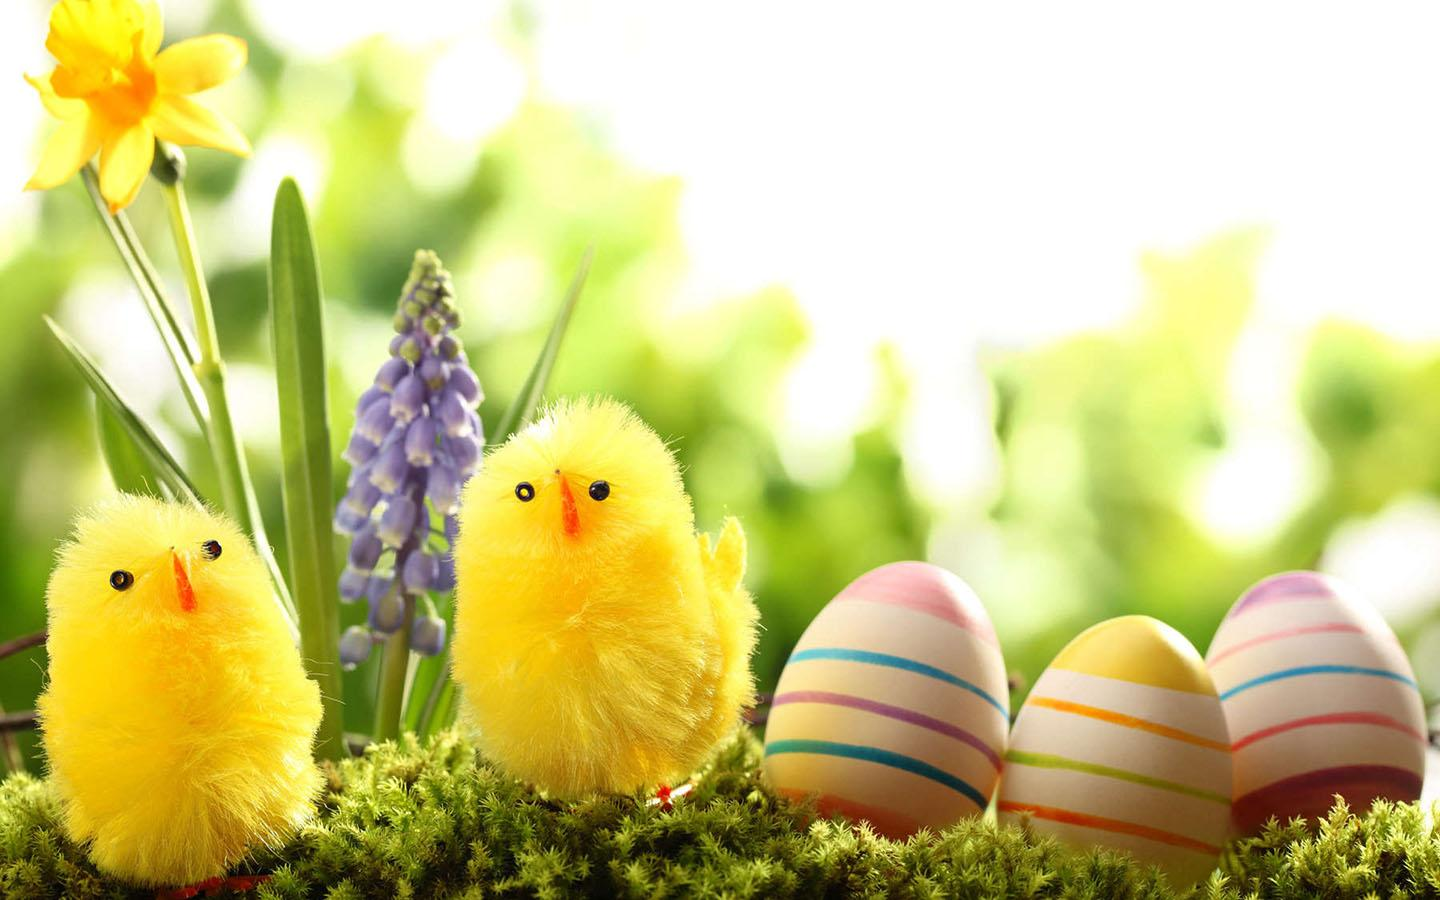 Easter Wallpapers   Android Apps on Google Play 1440x900